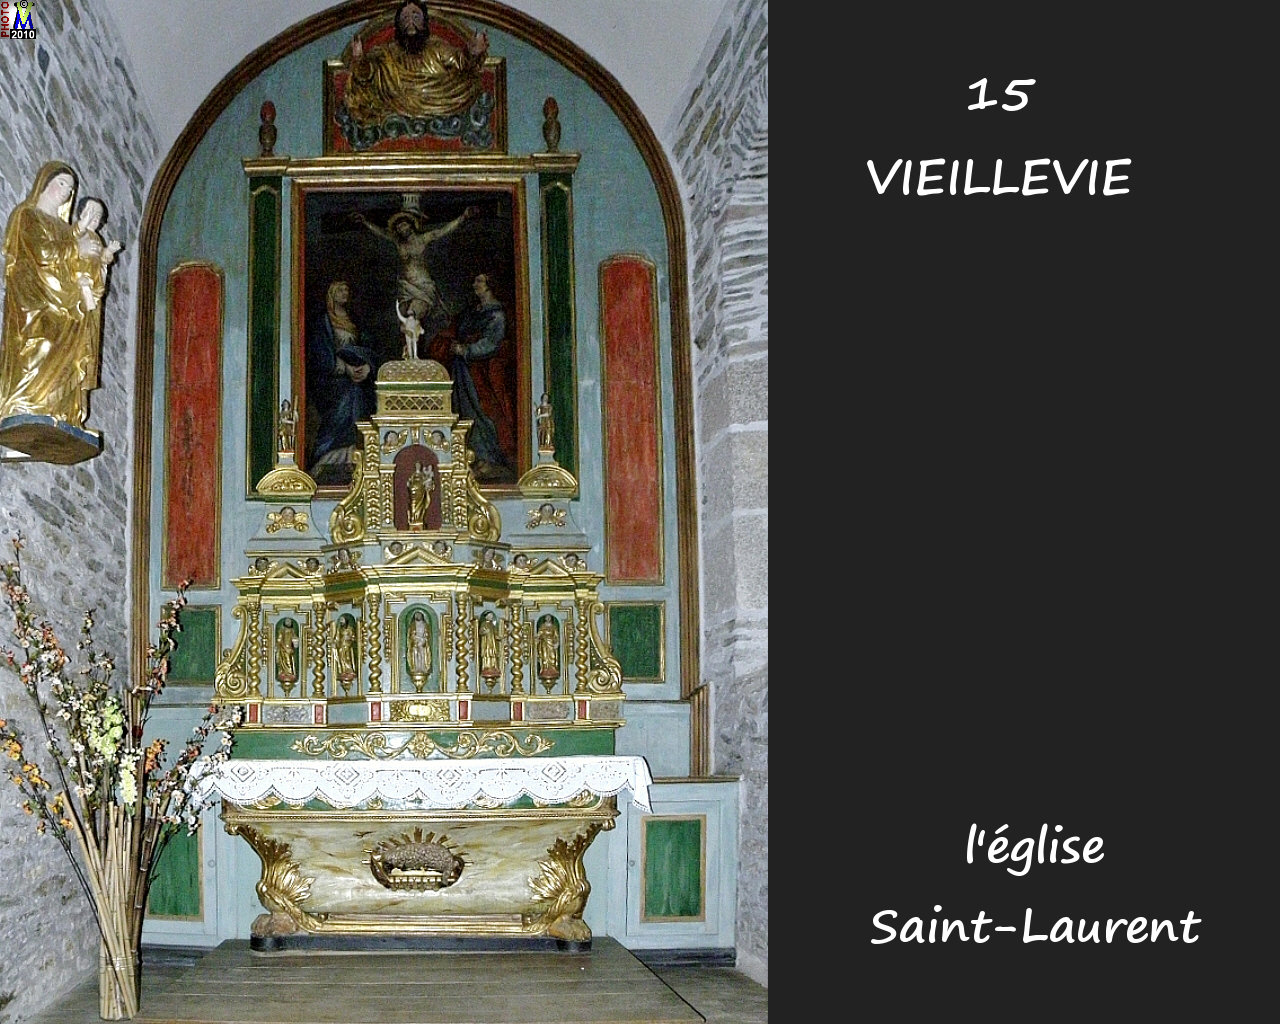 15VIEILLEVIE_eglise_210.jpg